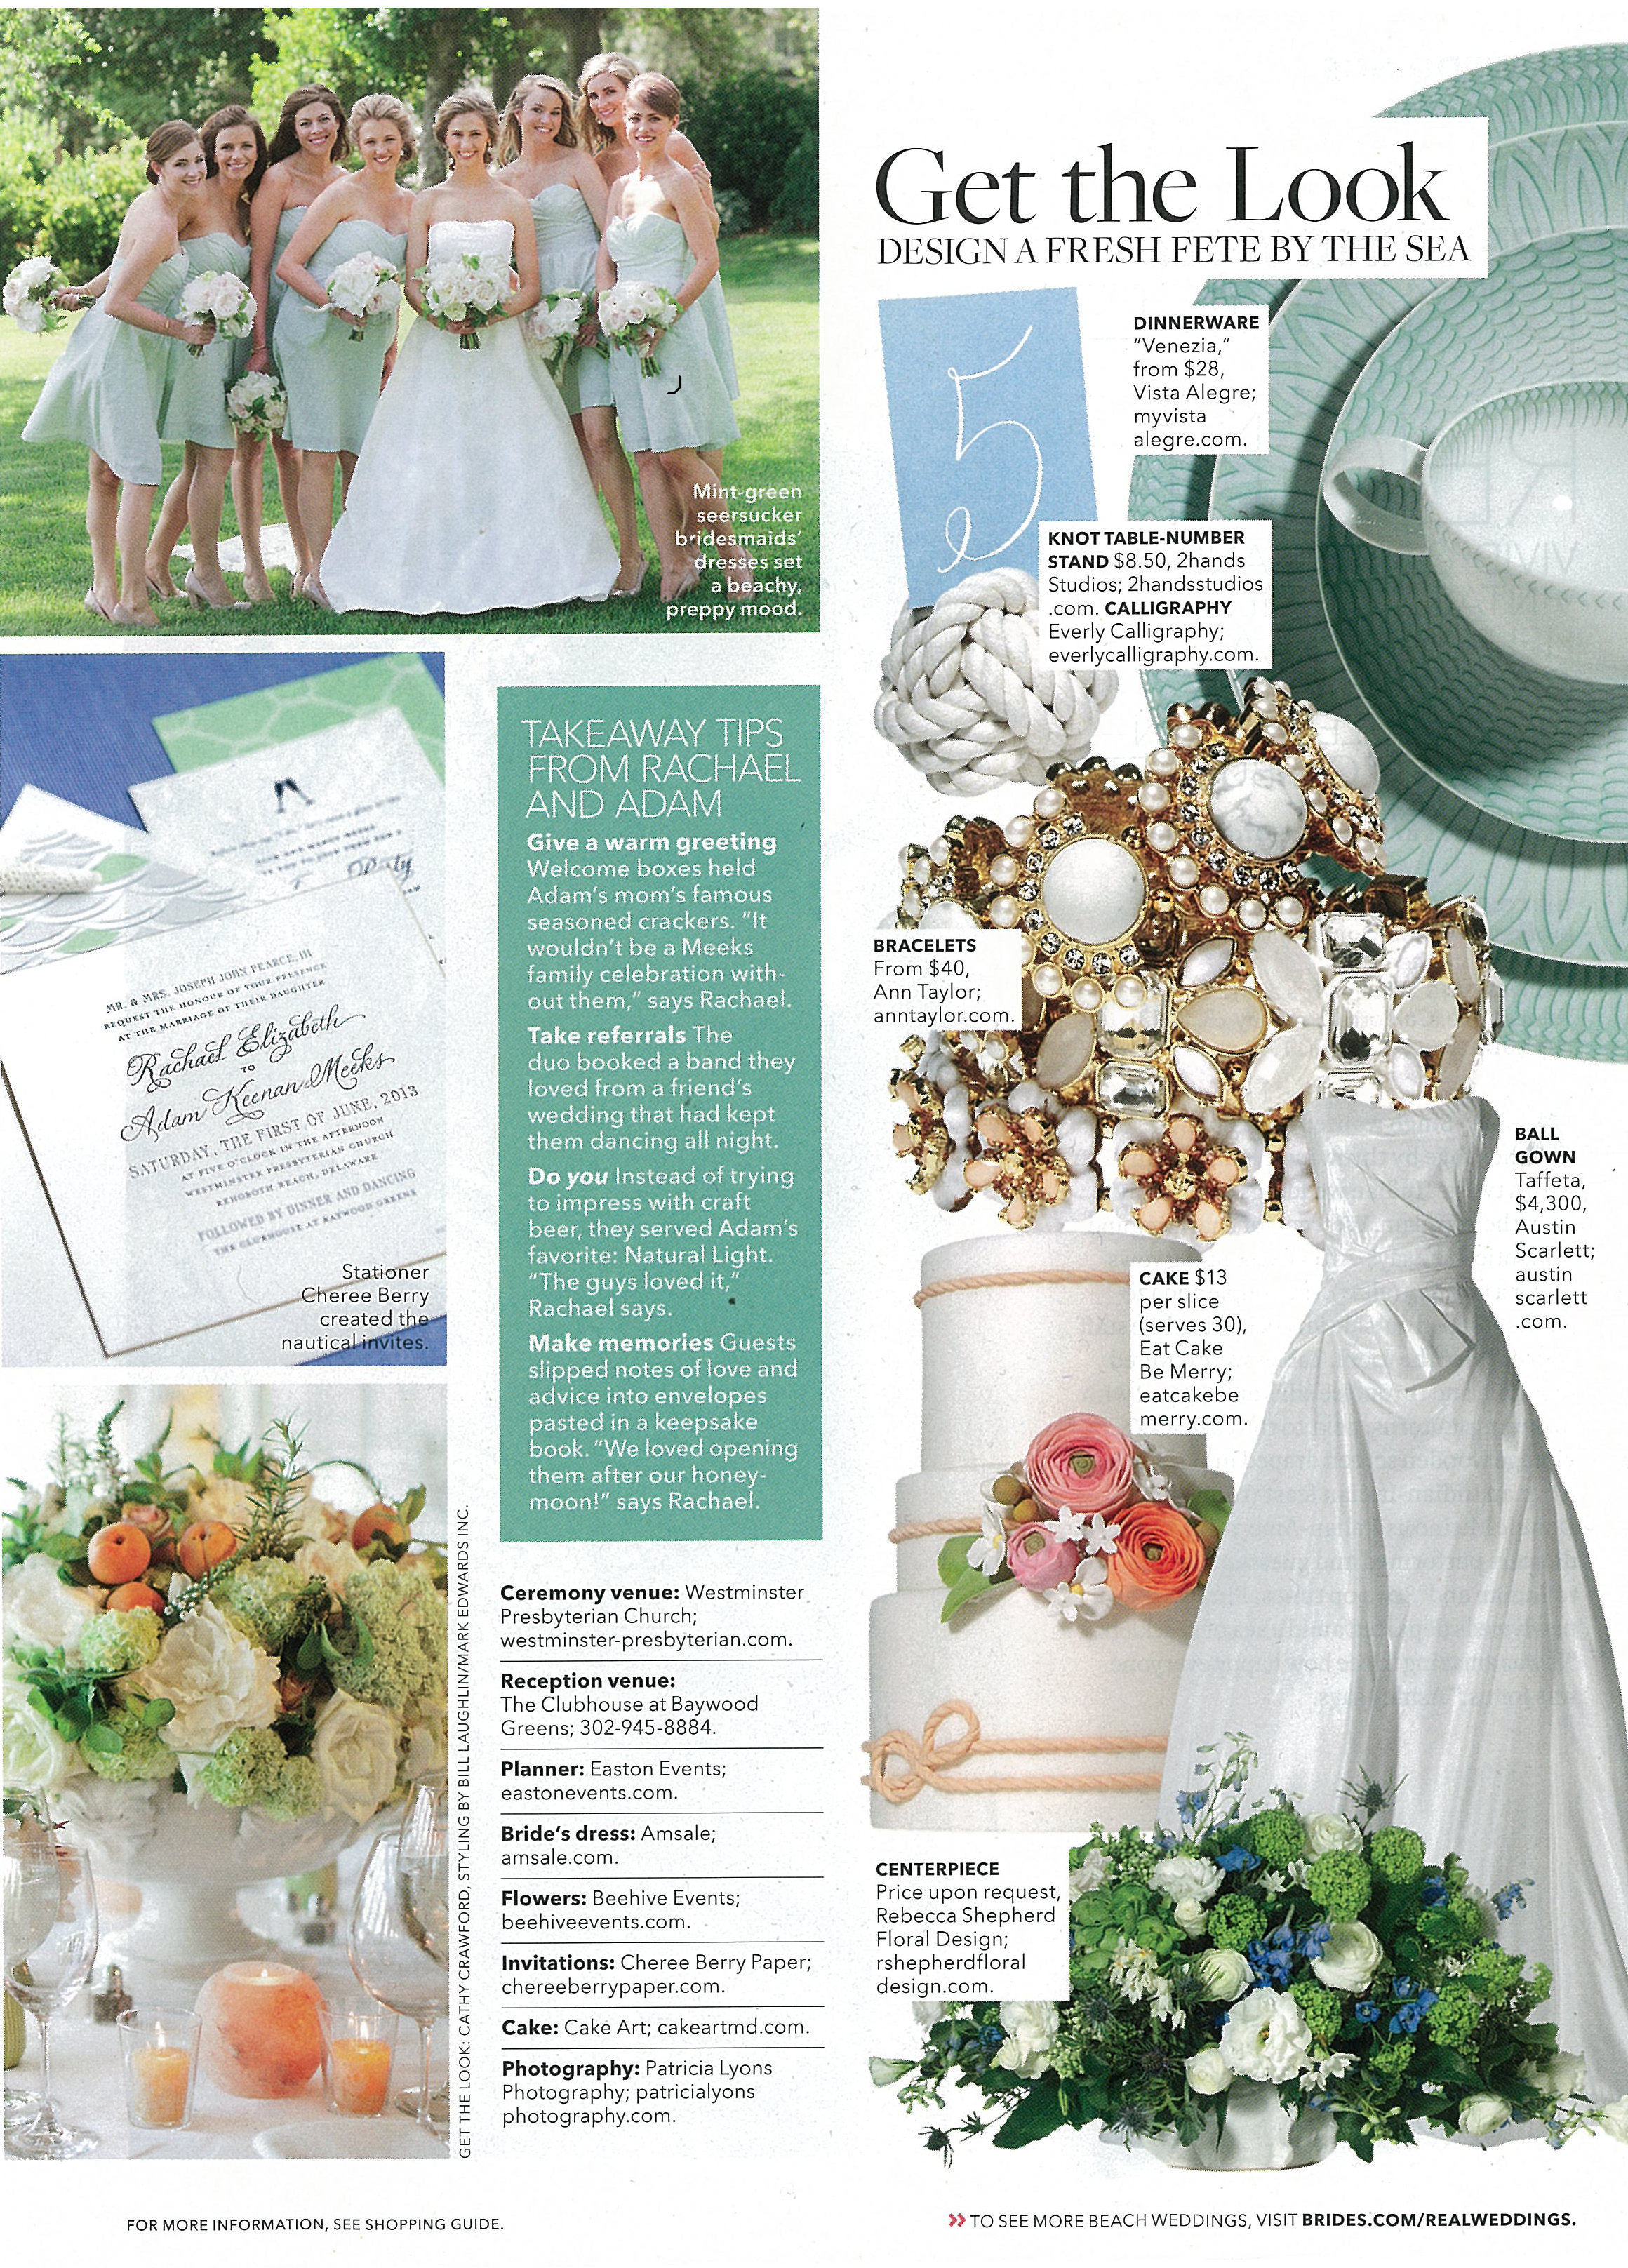 EatCakeBeMerry Brides Aug Sept 2014 Feature.png